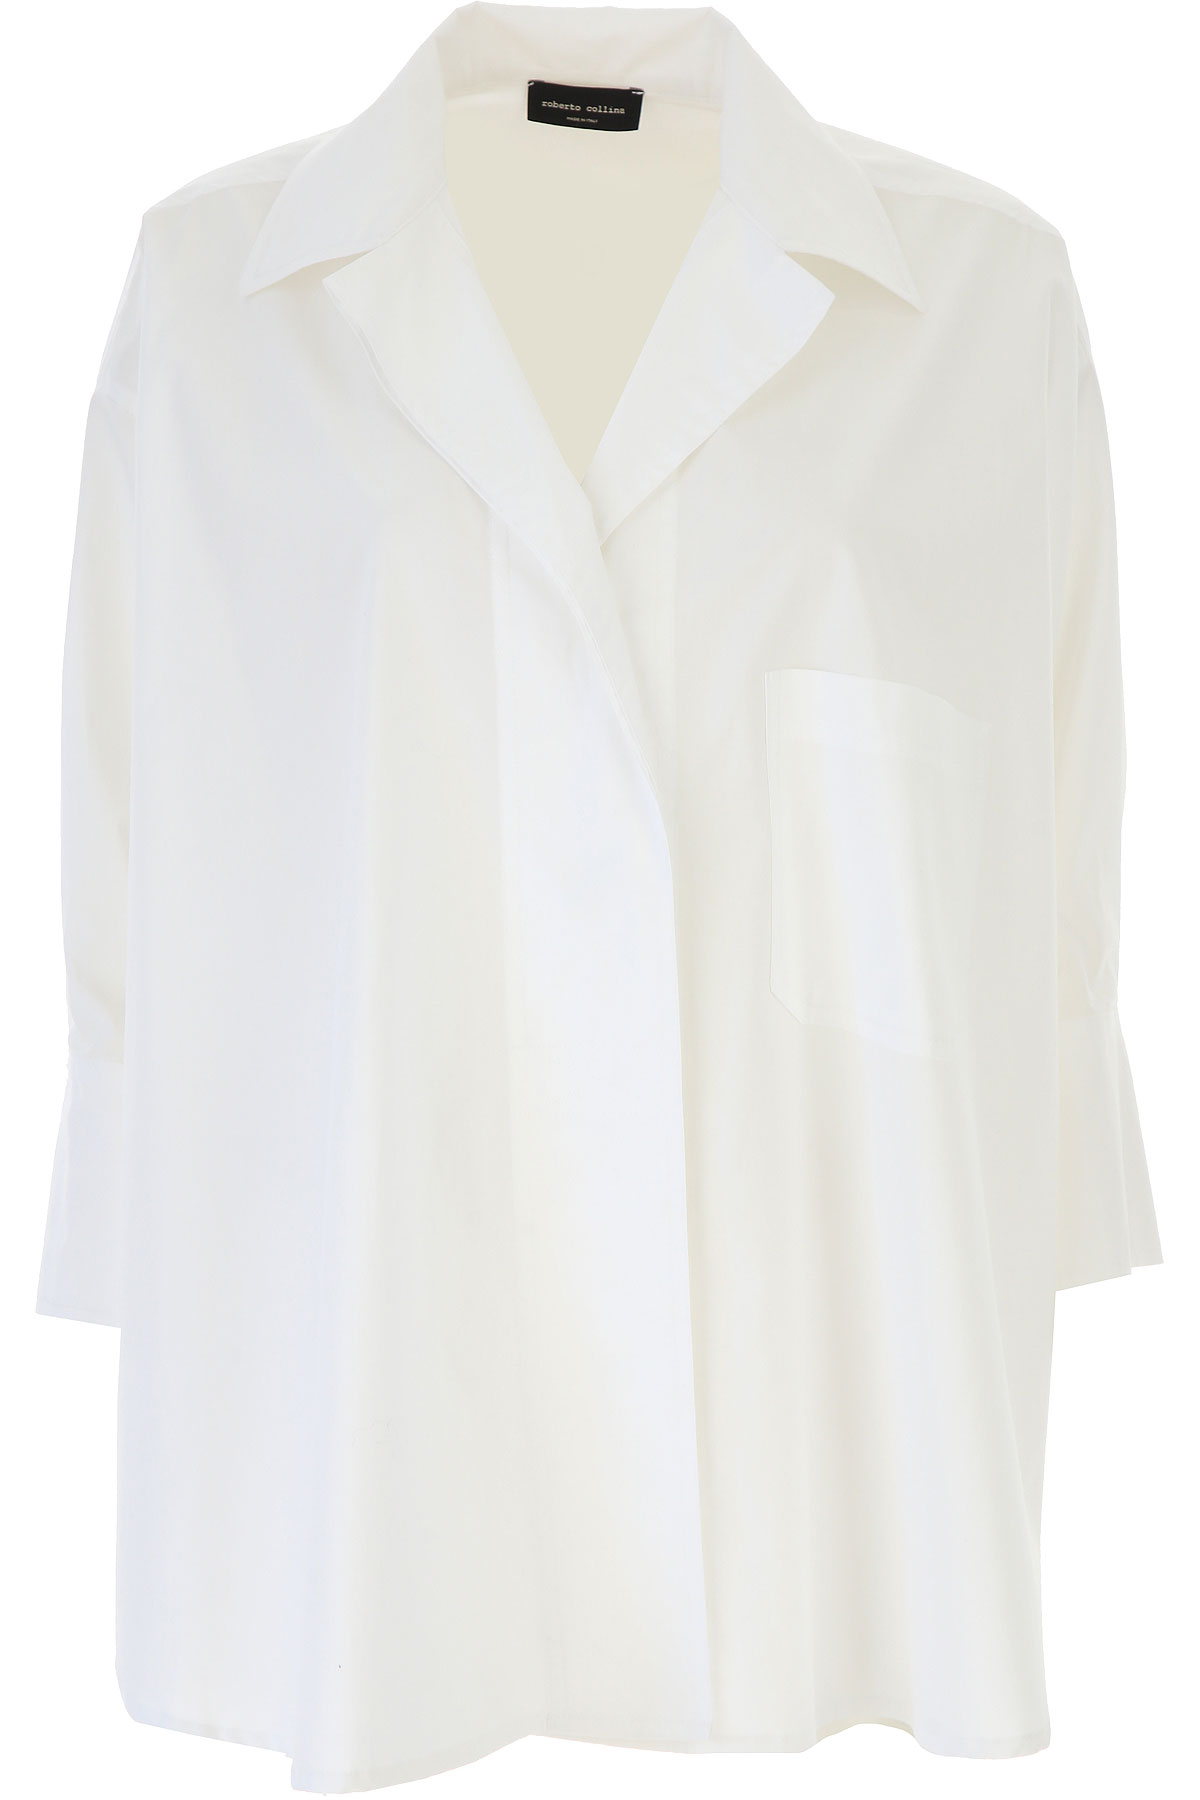 Roberto Collina Top for Women On Sale, White, Cotton, 2019, 4 XS